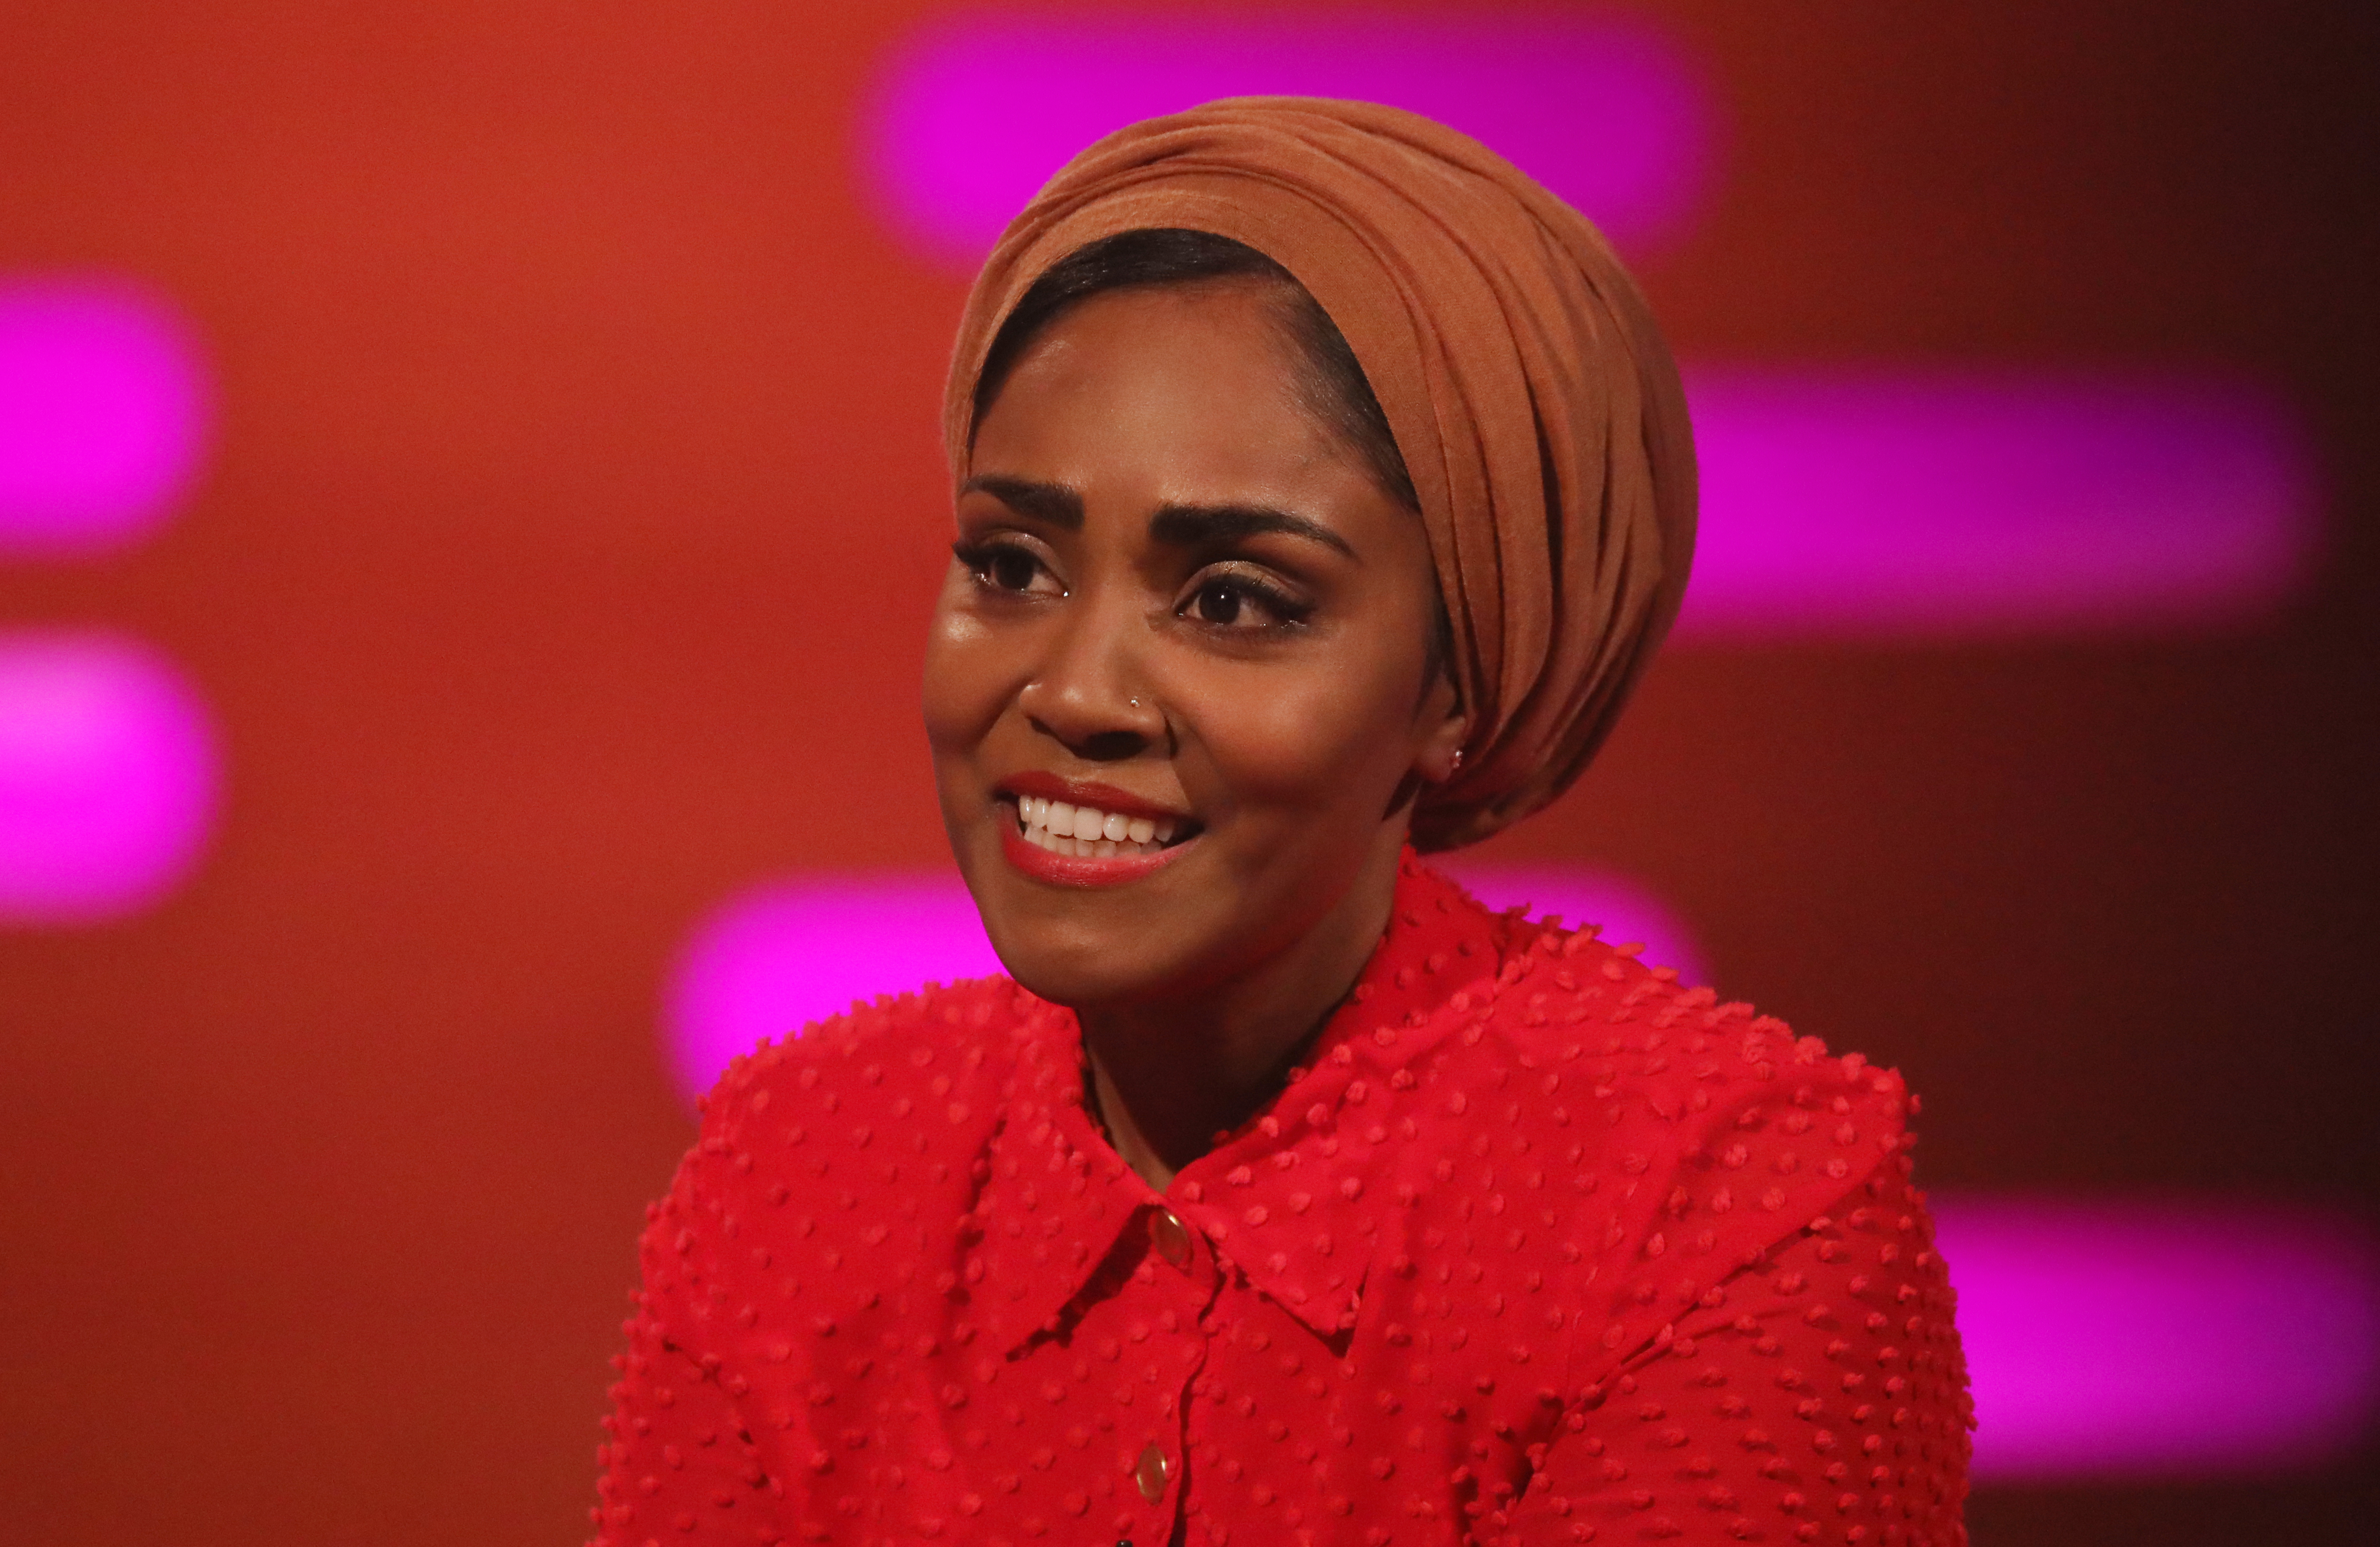 TV chef Nadiya Hussain during the filming for the Graham Norton Show at BBC Studioworks 6 Television Centre, Wood Lane, London, to be aired on BBC One on Friday evening. (Photo by Isabel Infantes/PA Images via Getty Images)